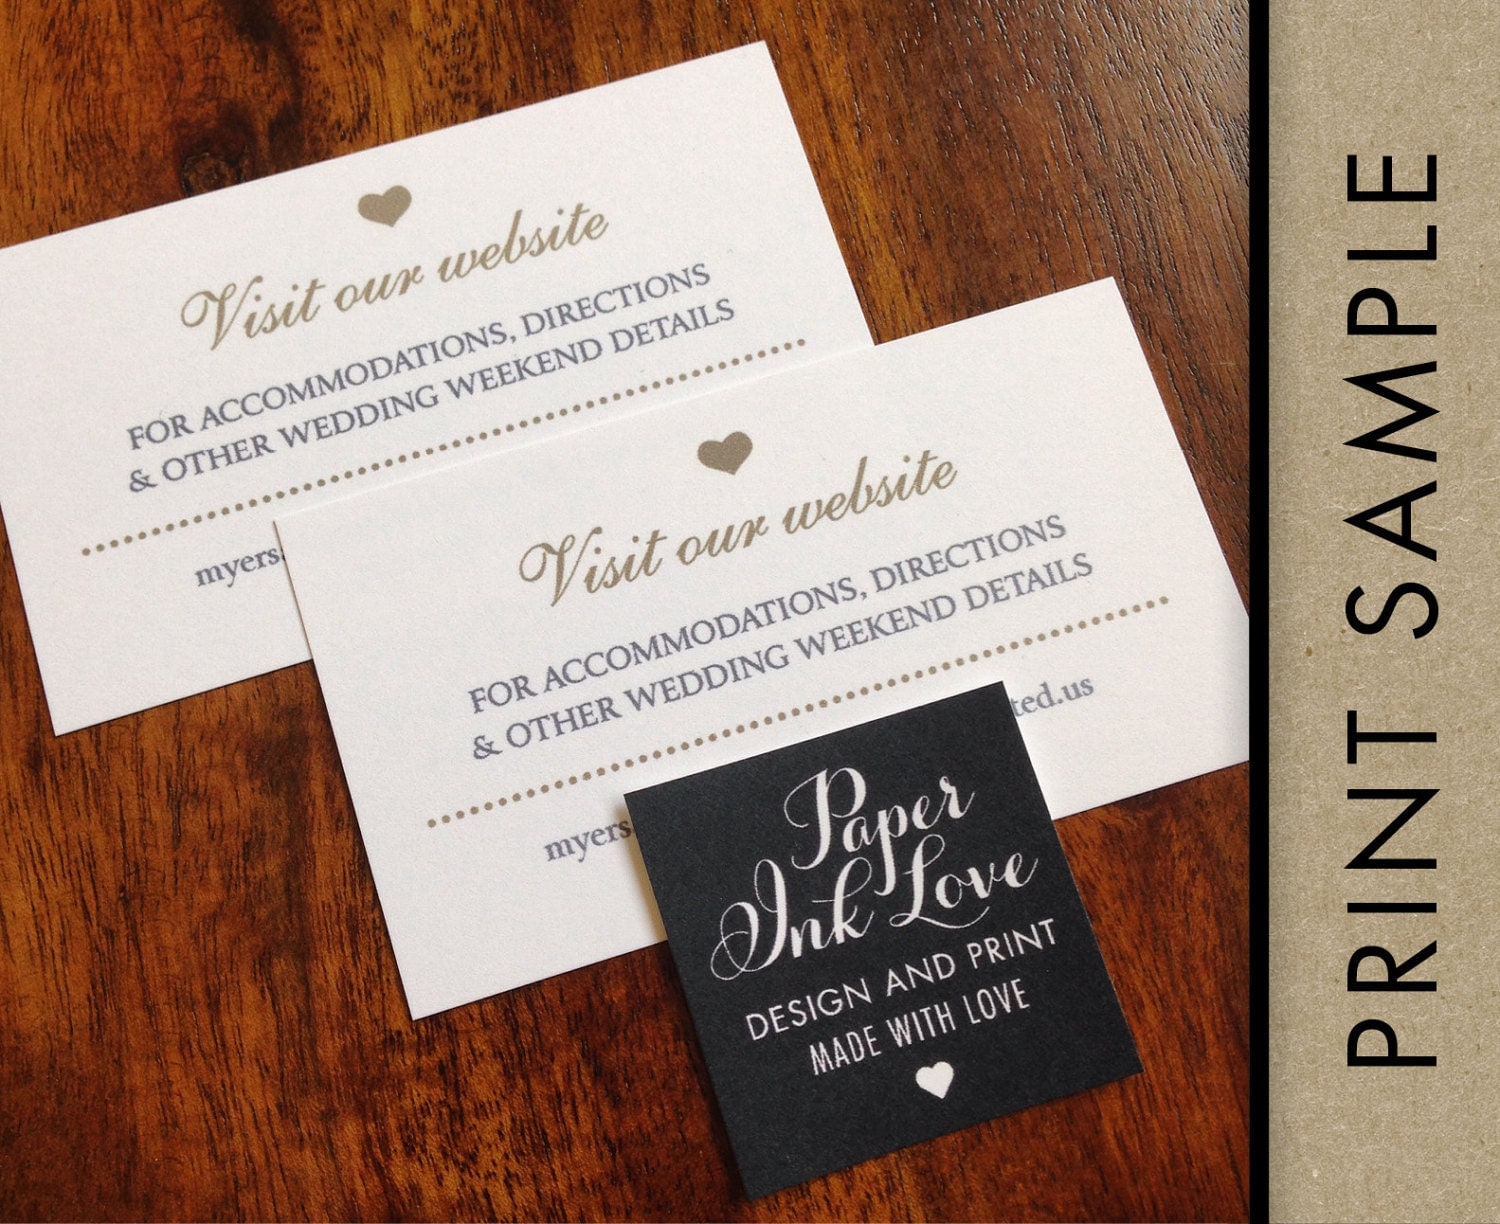 Wedding Gift Card Registry: Wedding Website Cards, Enclosure Cards, Wedding Hashtag